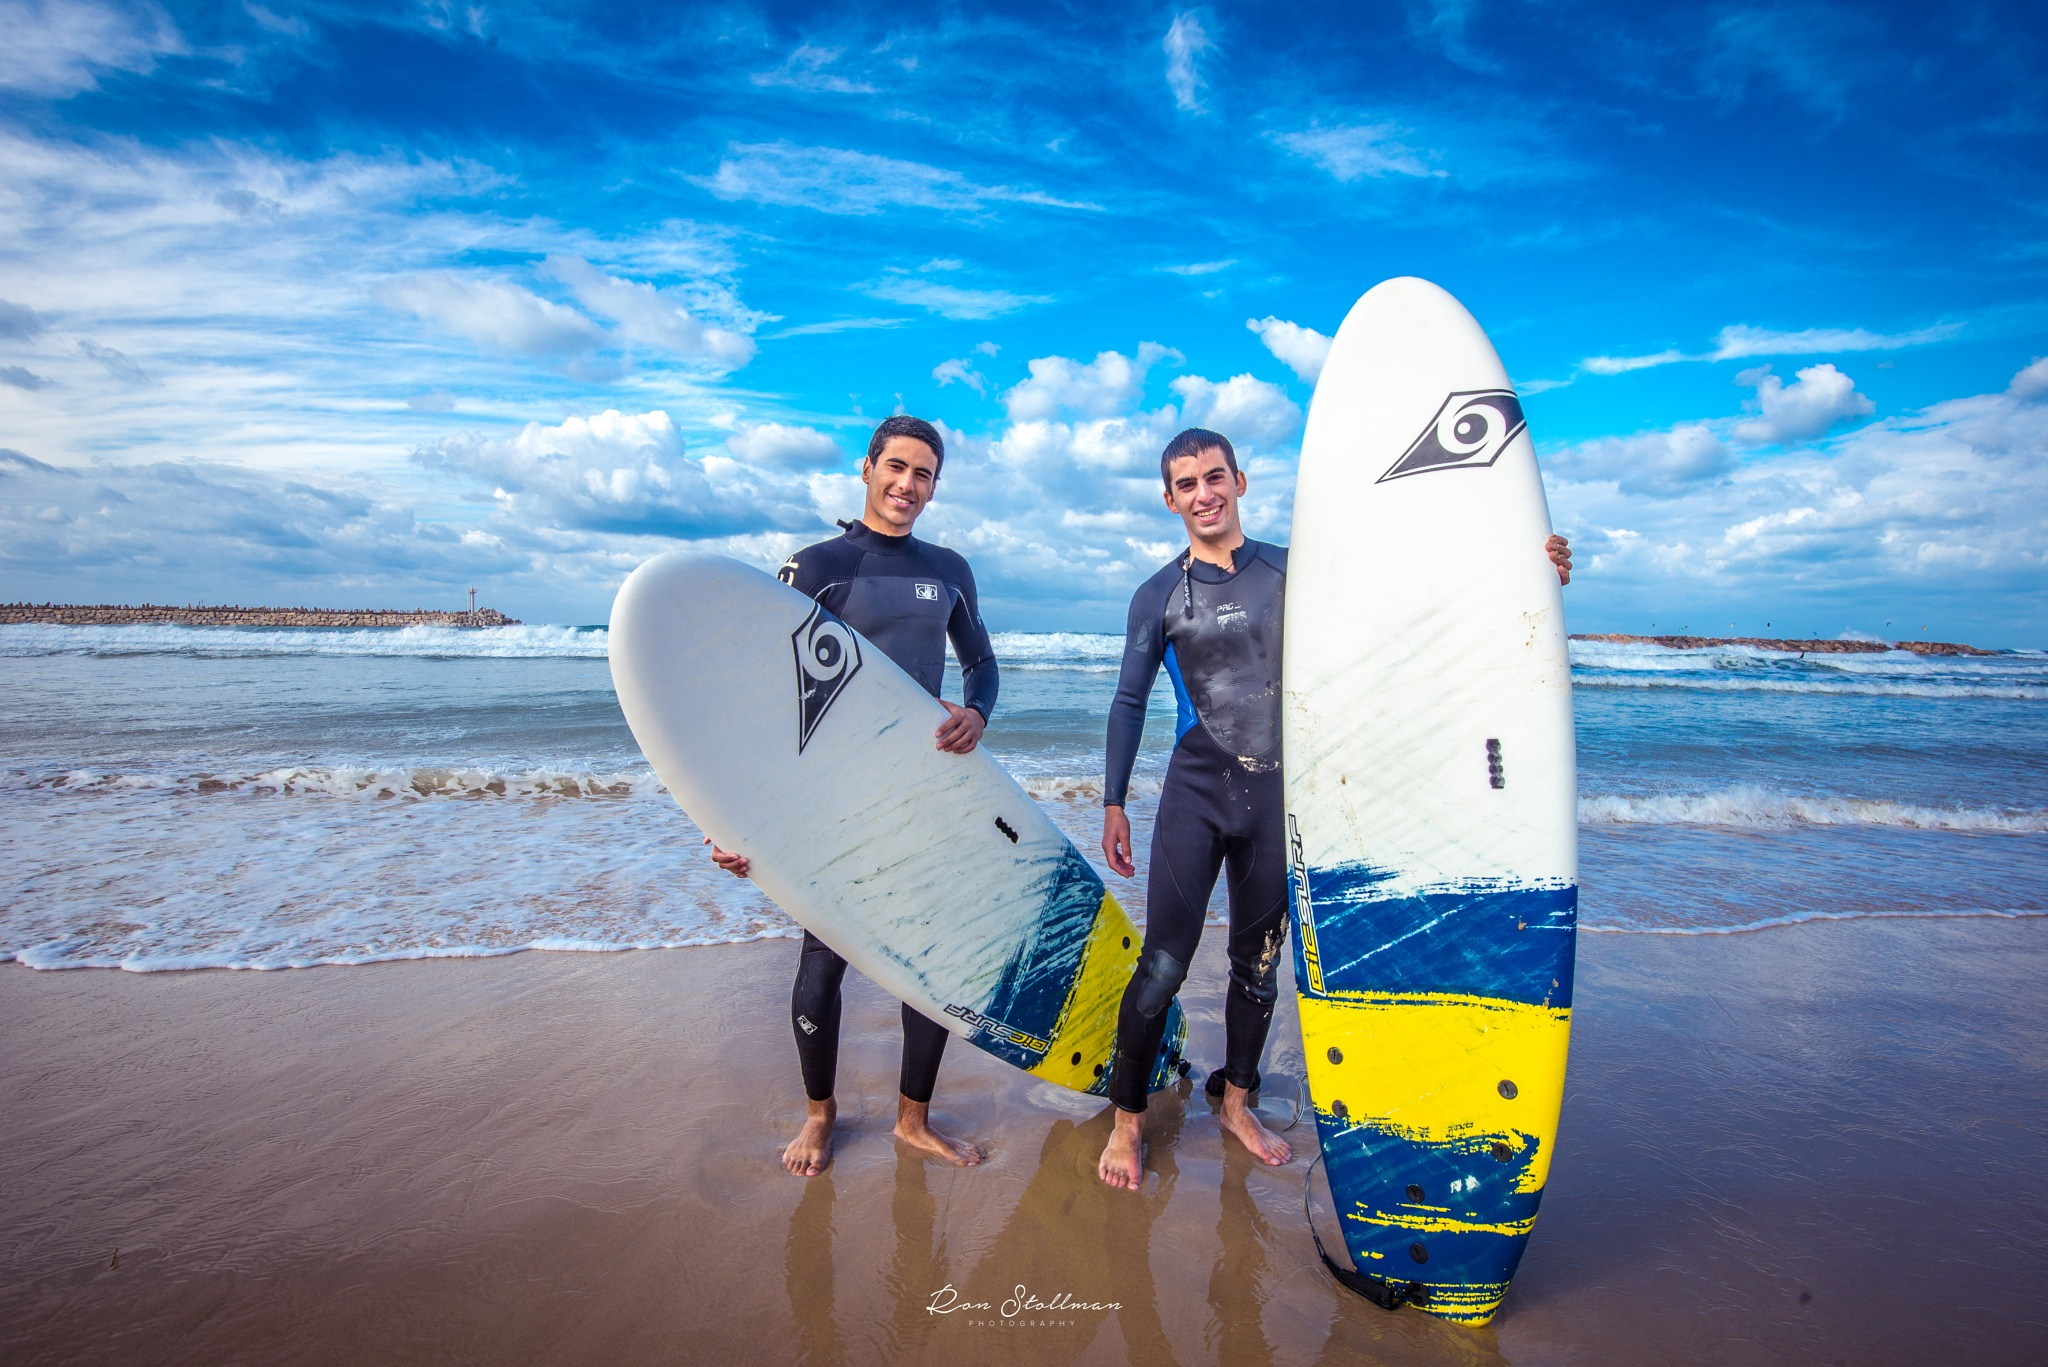 Two Surfing Buddies  by Ron Stollman